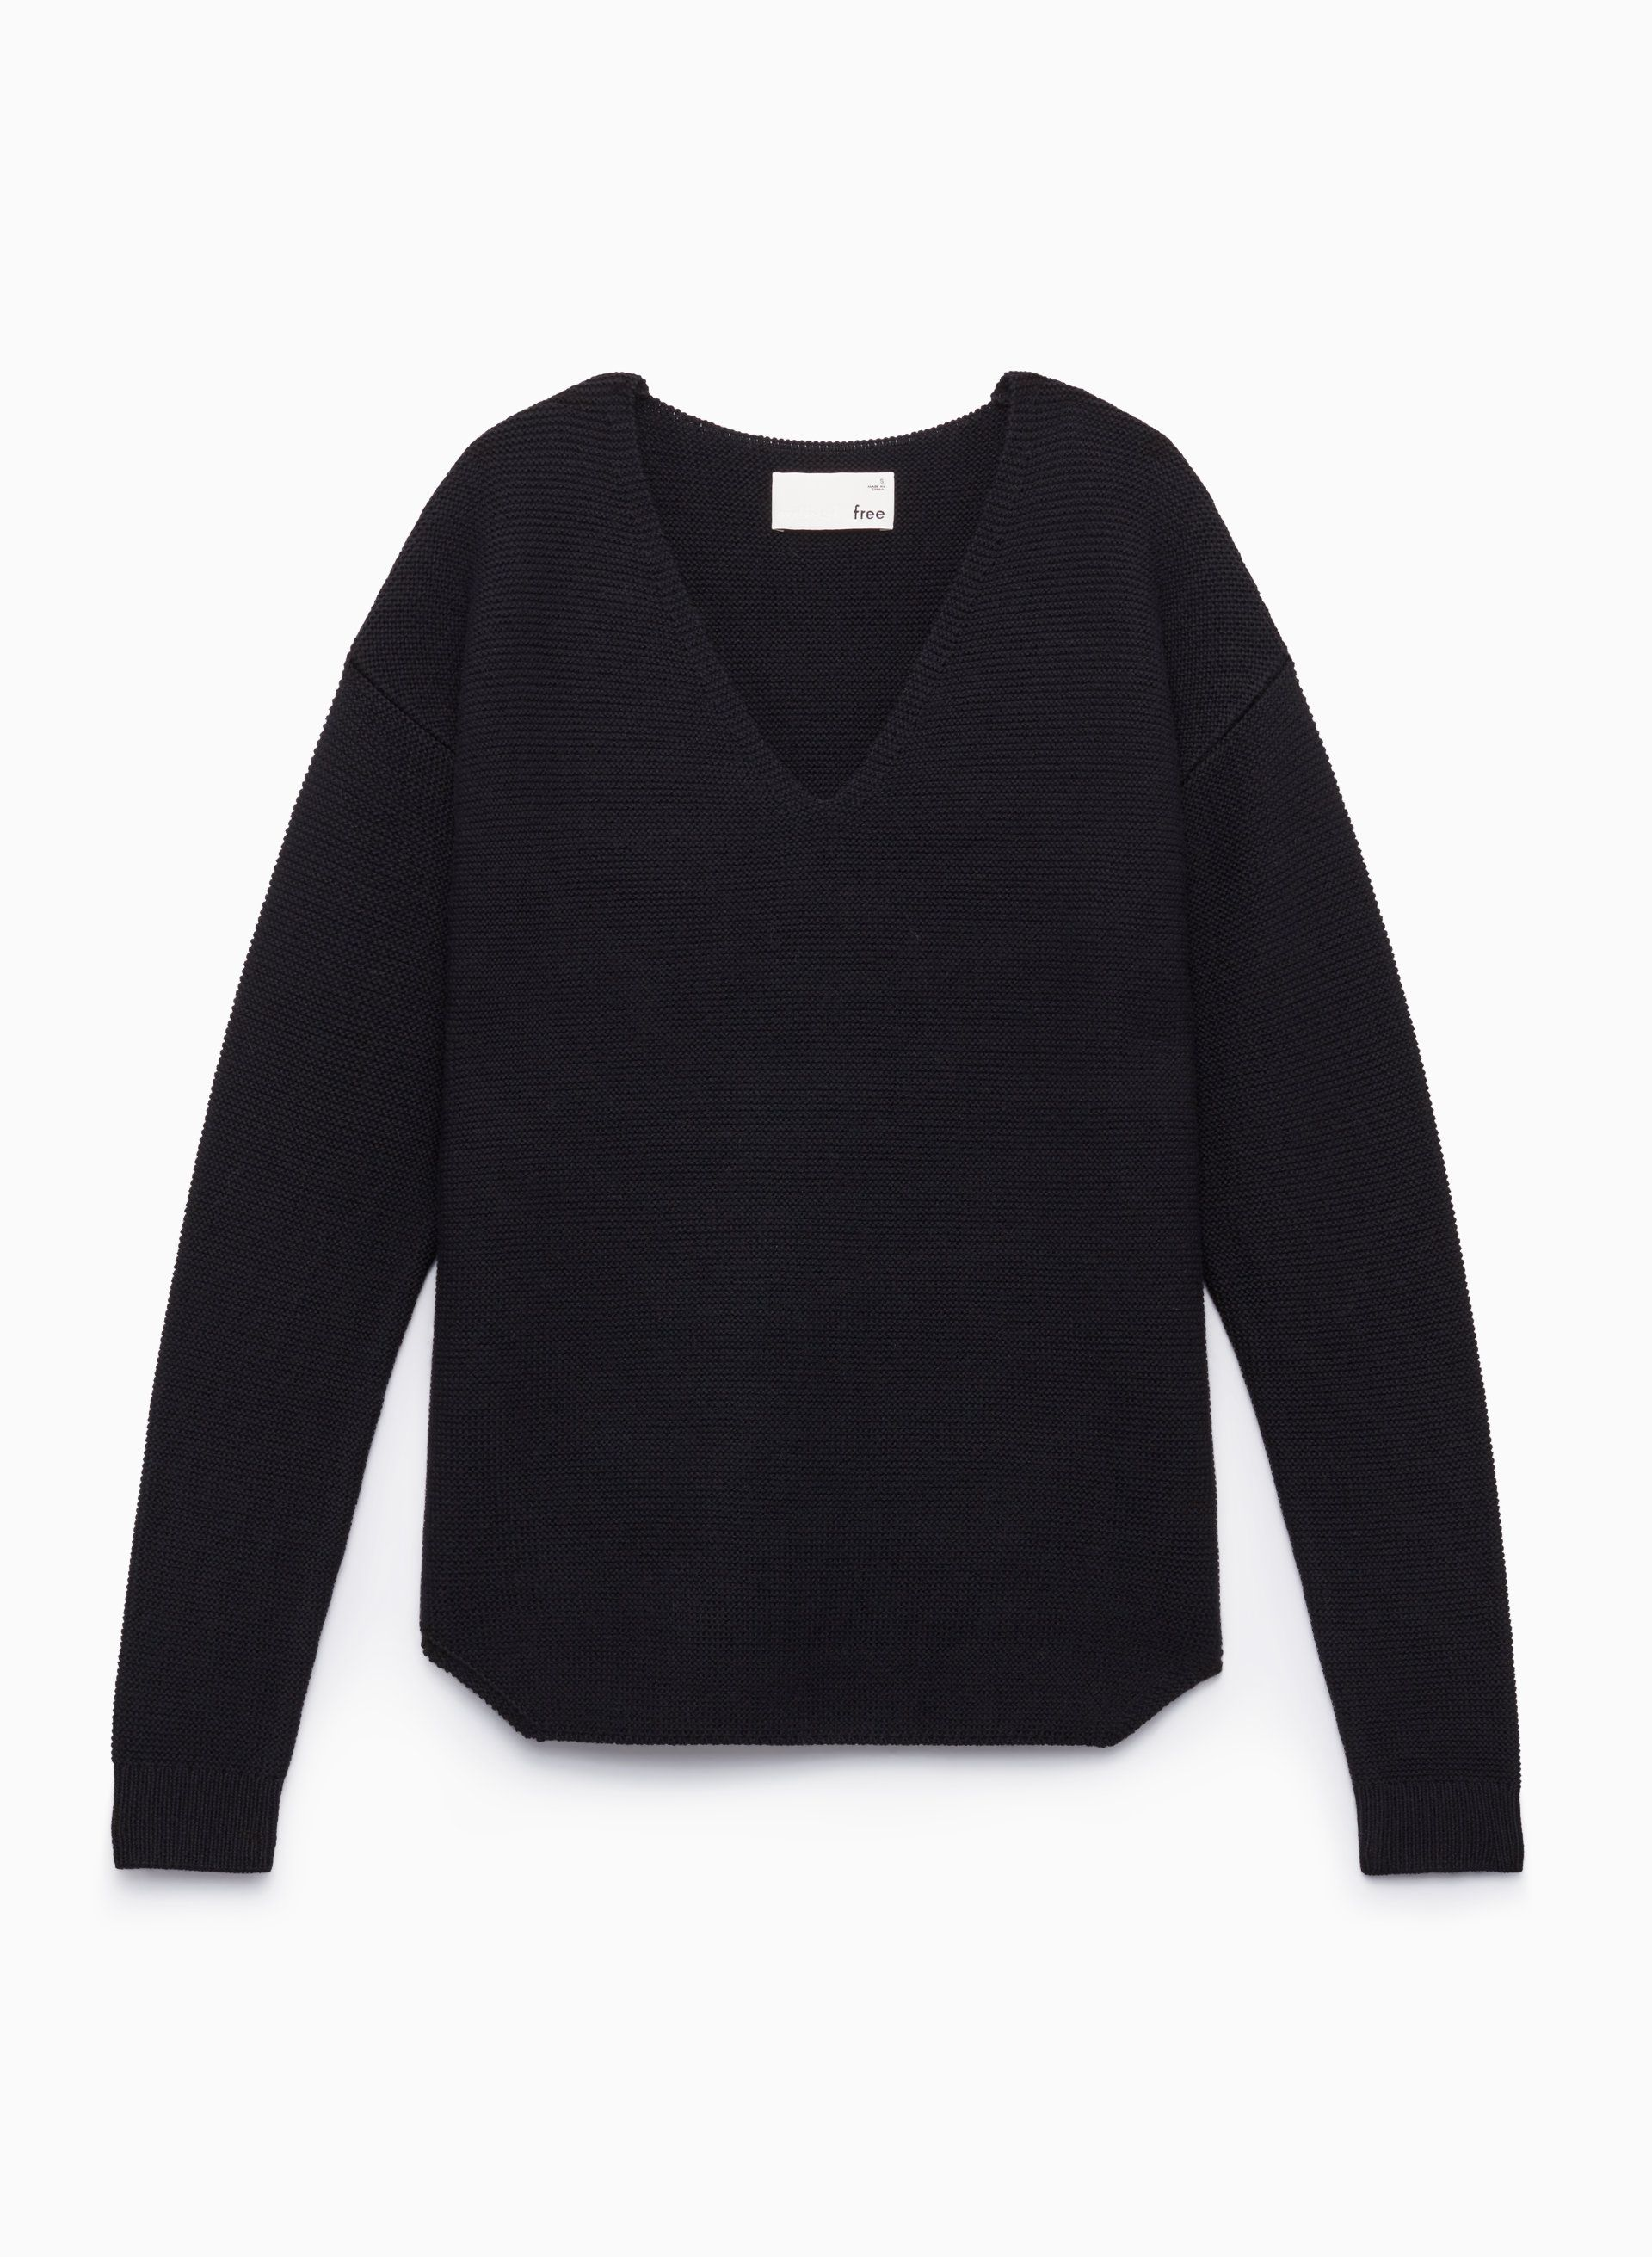 Wolter sweater | Sweaters, Men sweater, Fashion